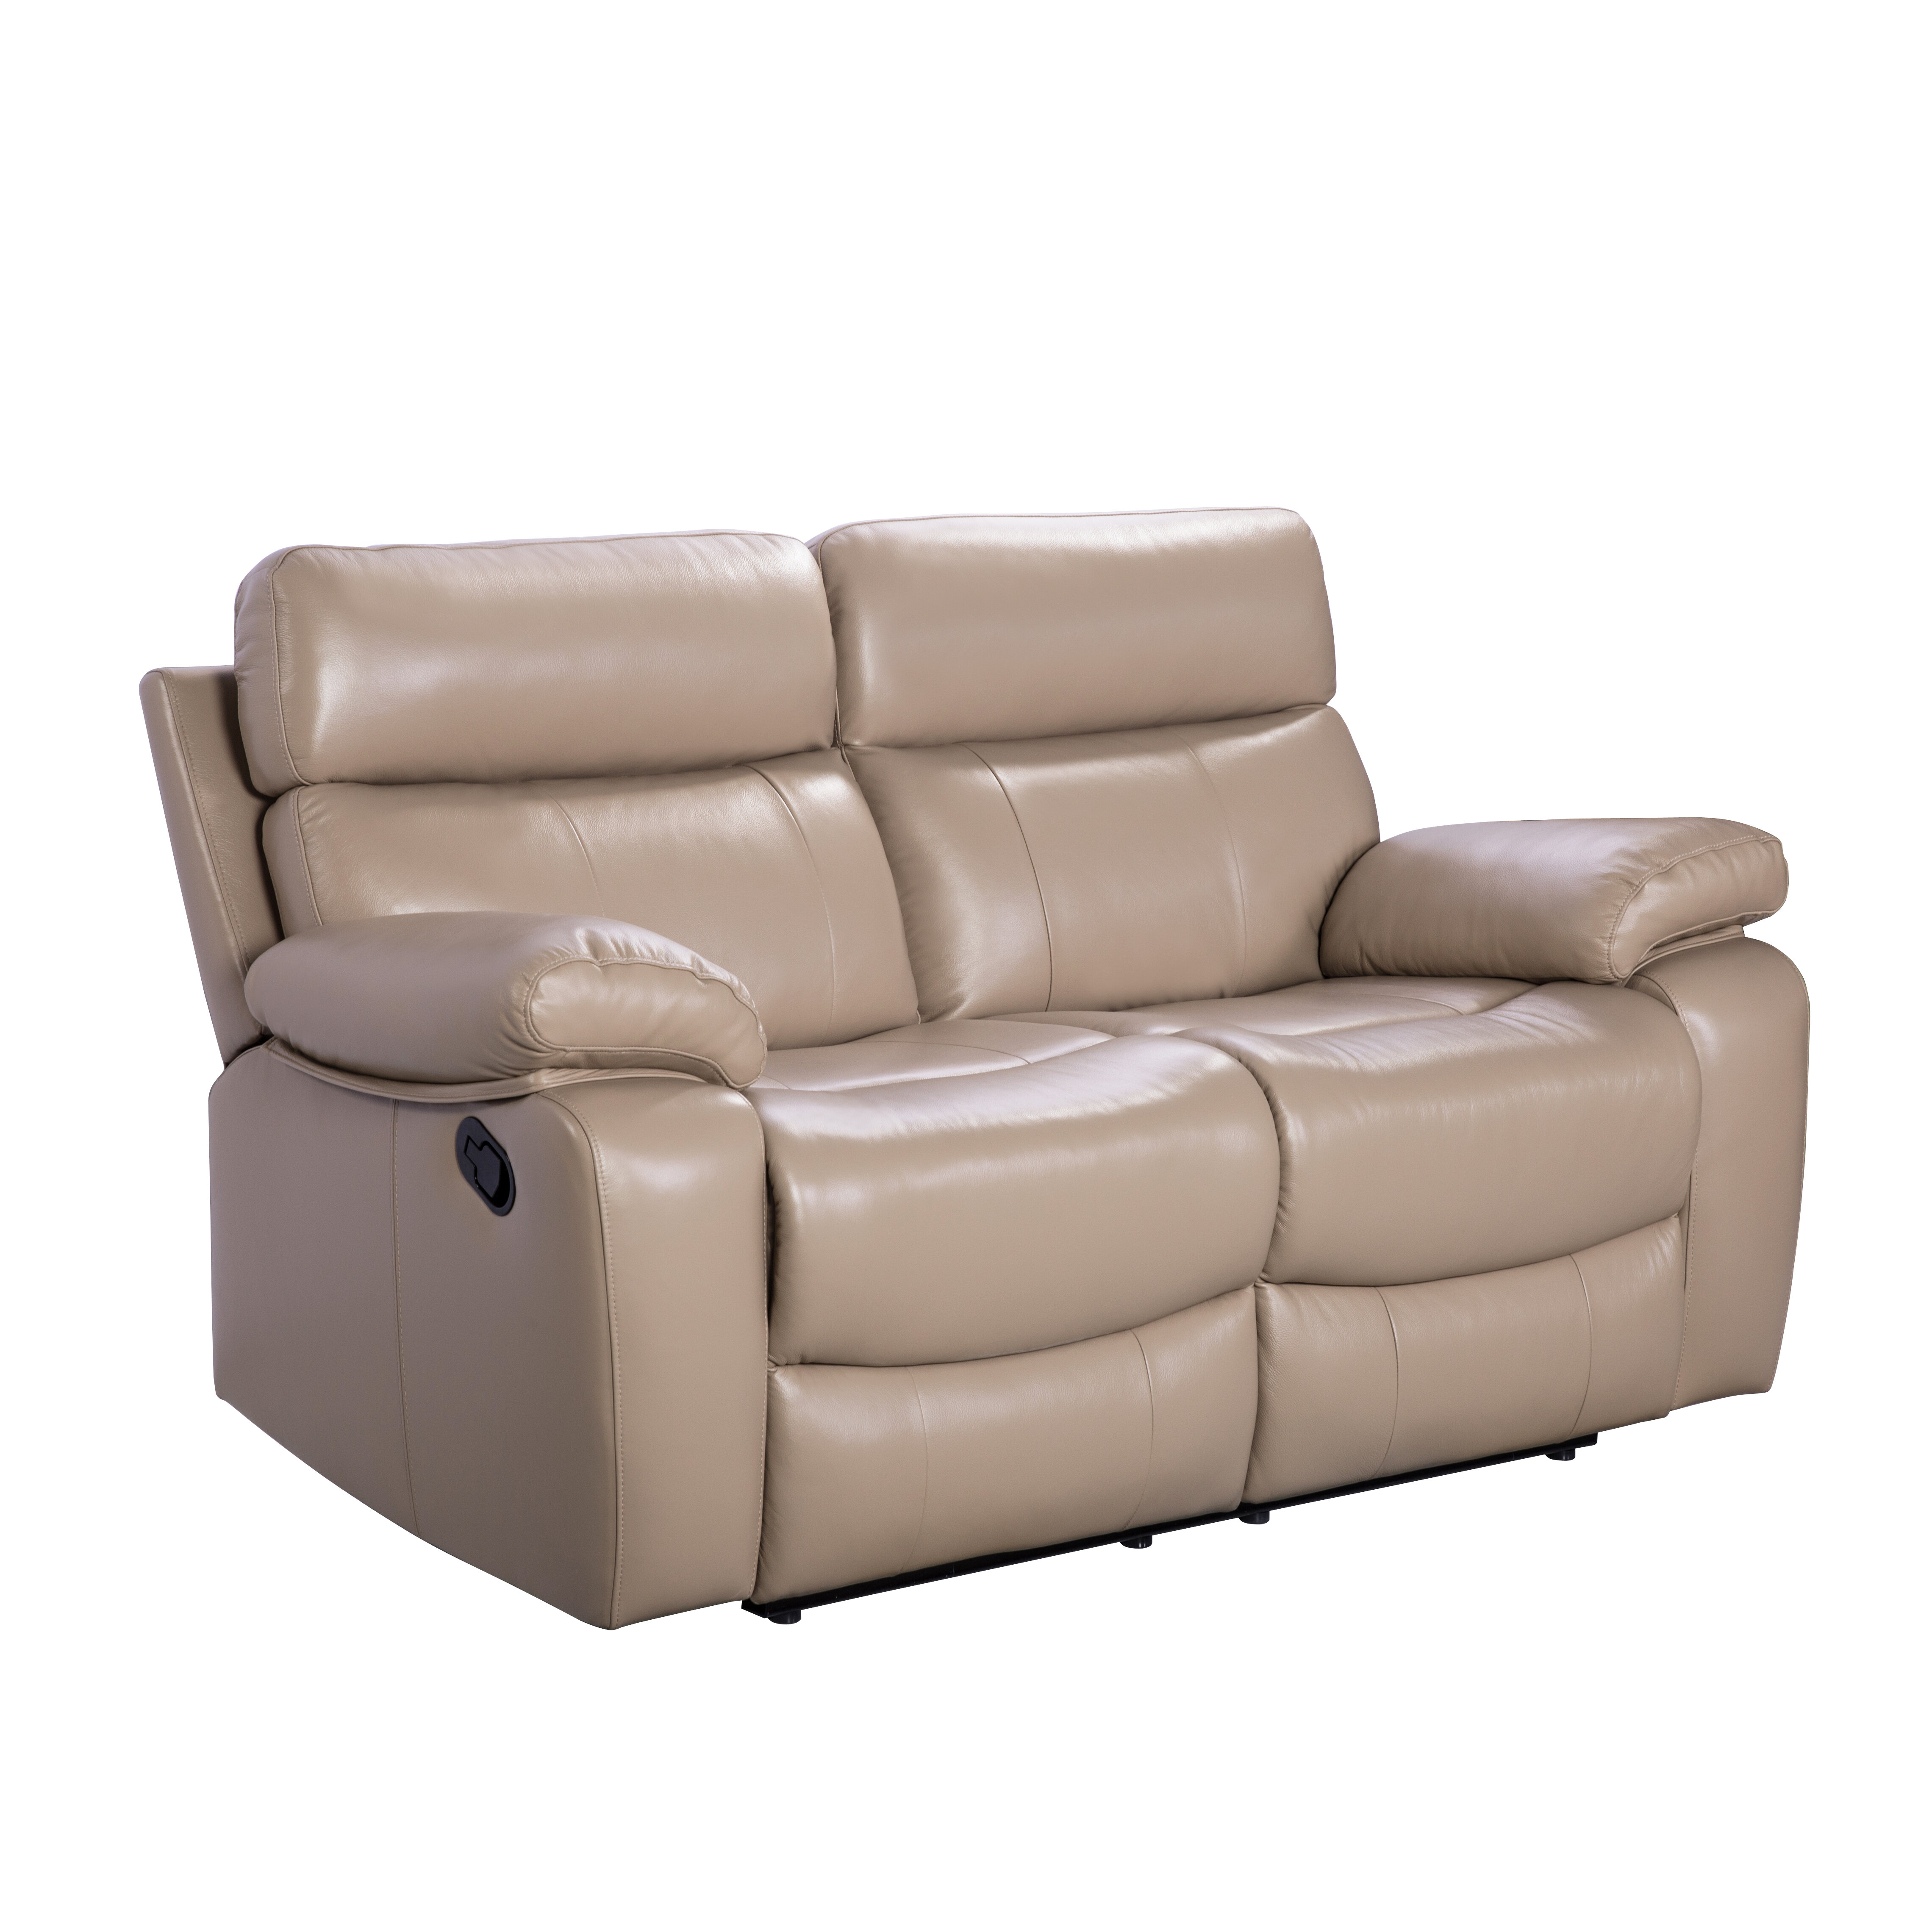 Wondrous Mellor Leather Reclining Loveseat Ocoug Best Dining Table And Chair Ideas Images Ocougorg